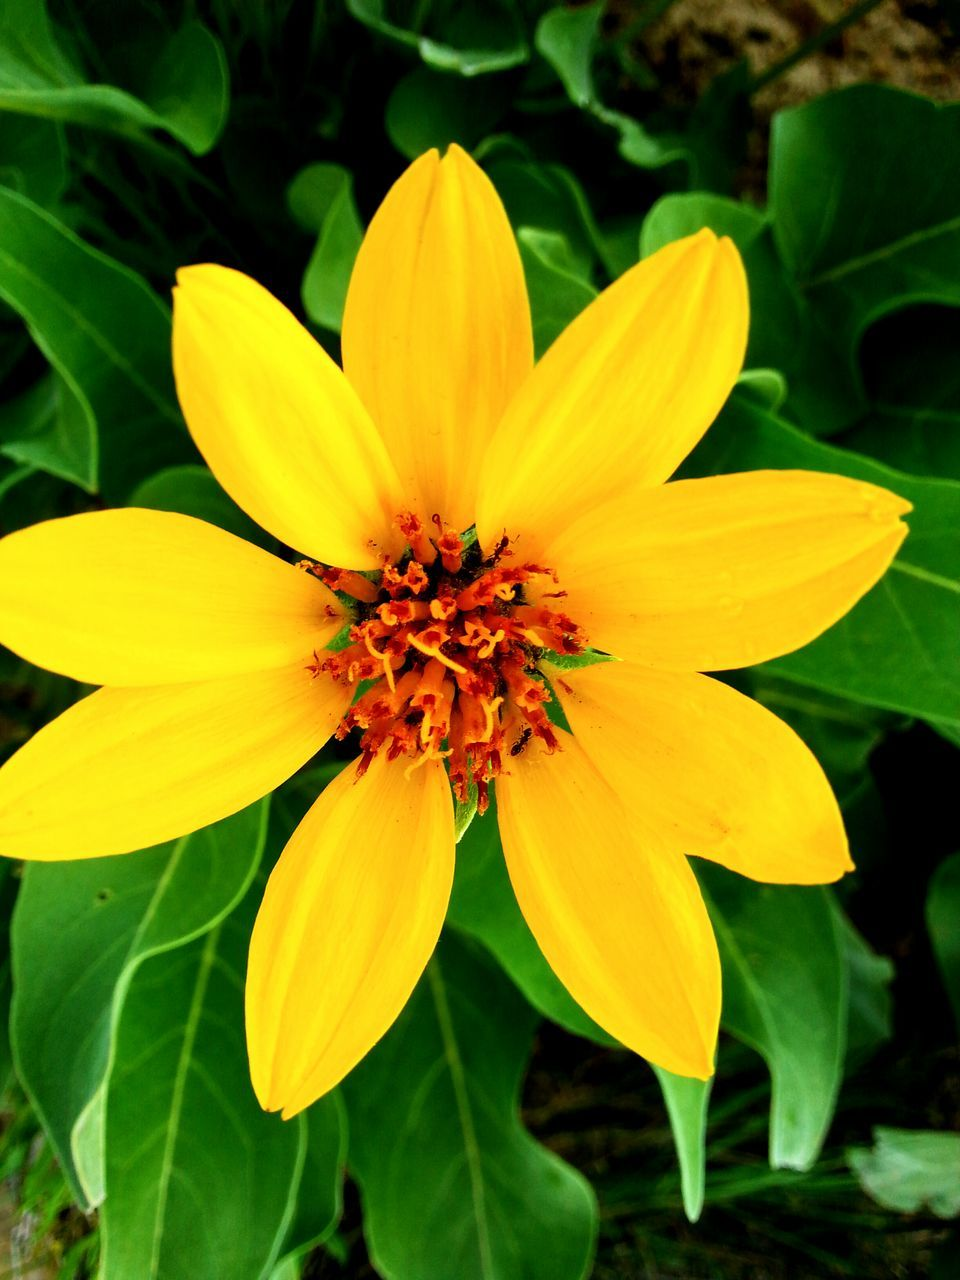 flower, petal, yellow, fragility, flower head, freshness, beauty in nature, nature, growth, plant, blooming, pollen, no people, leaf, outdoors, close-up, day, gazania